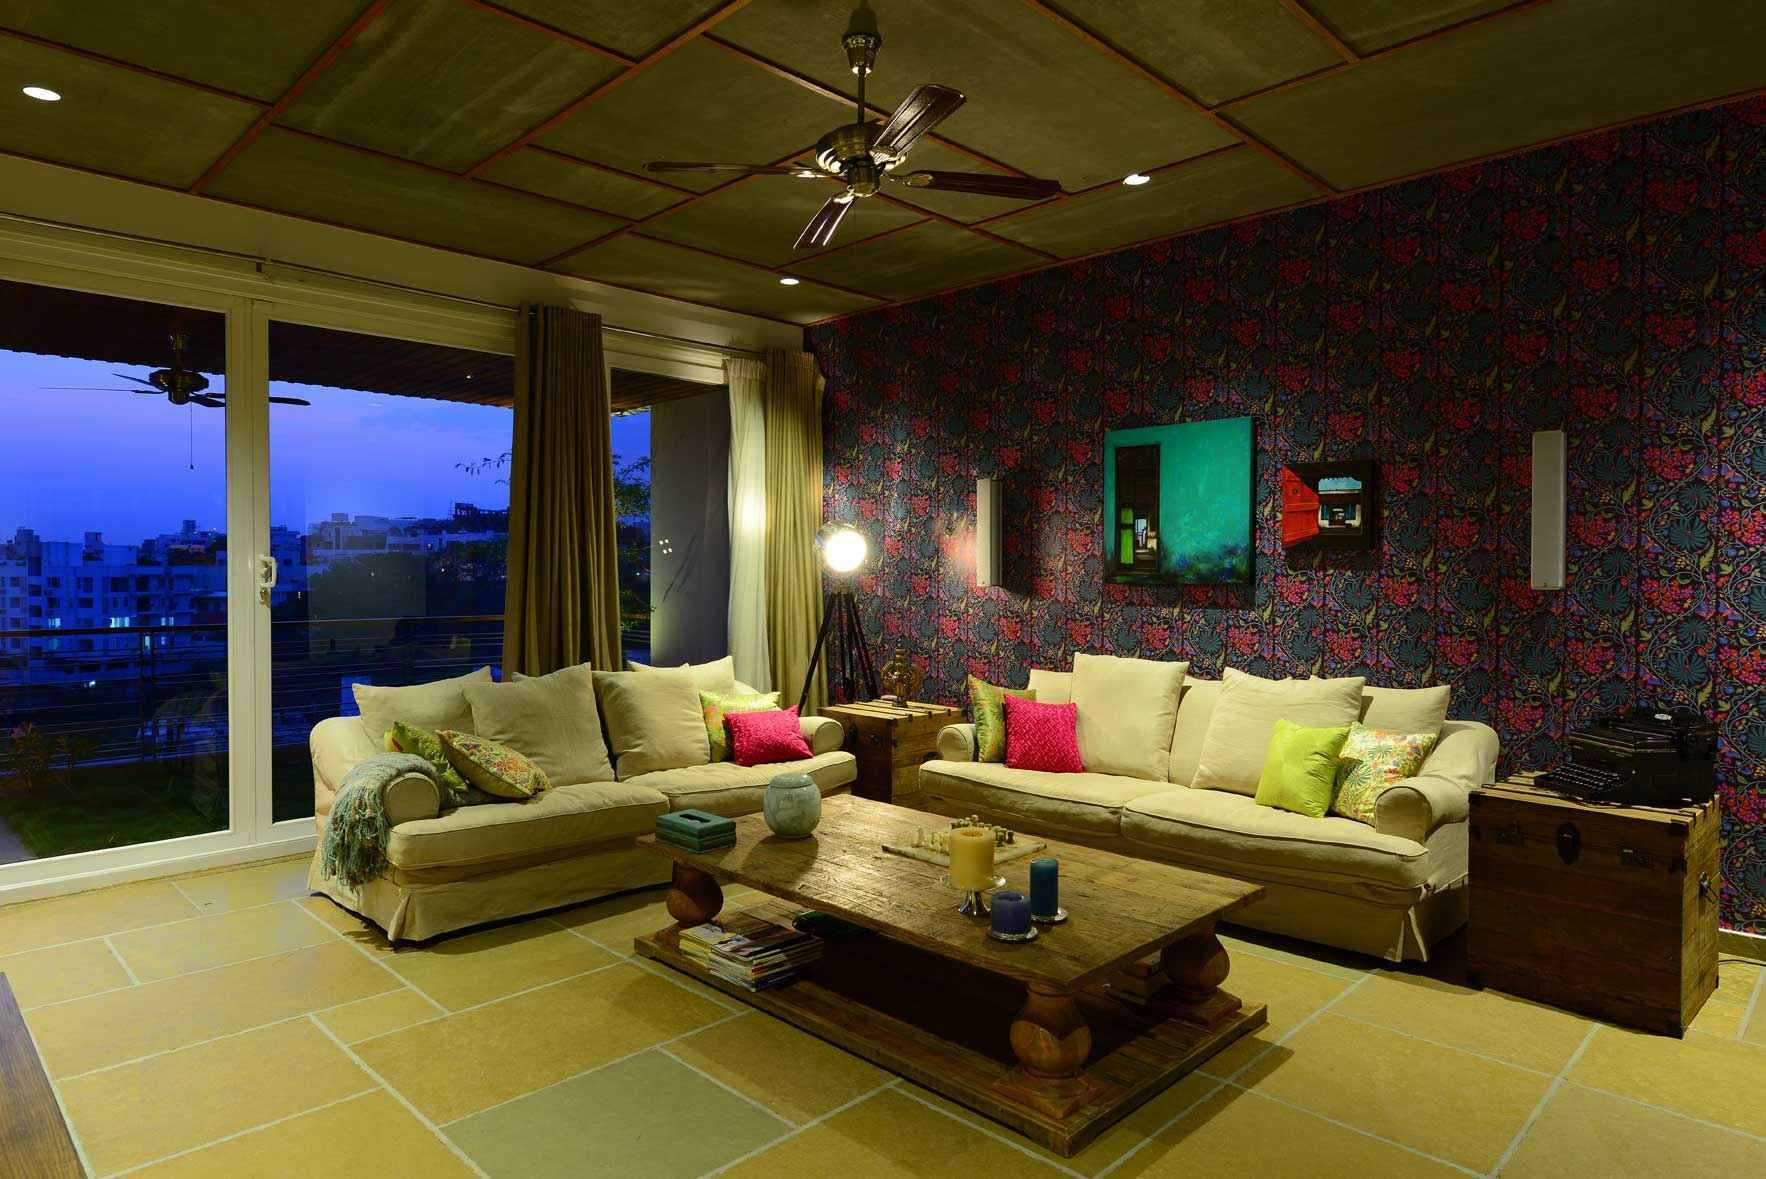 large living room with wallpaper design by hameeda sharma